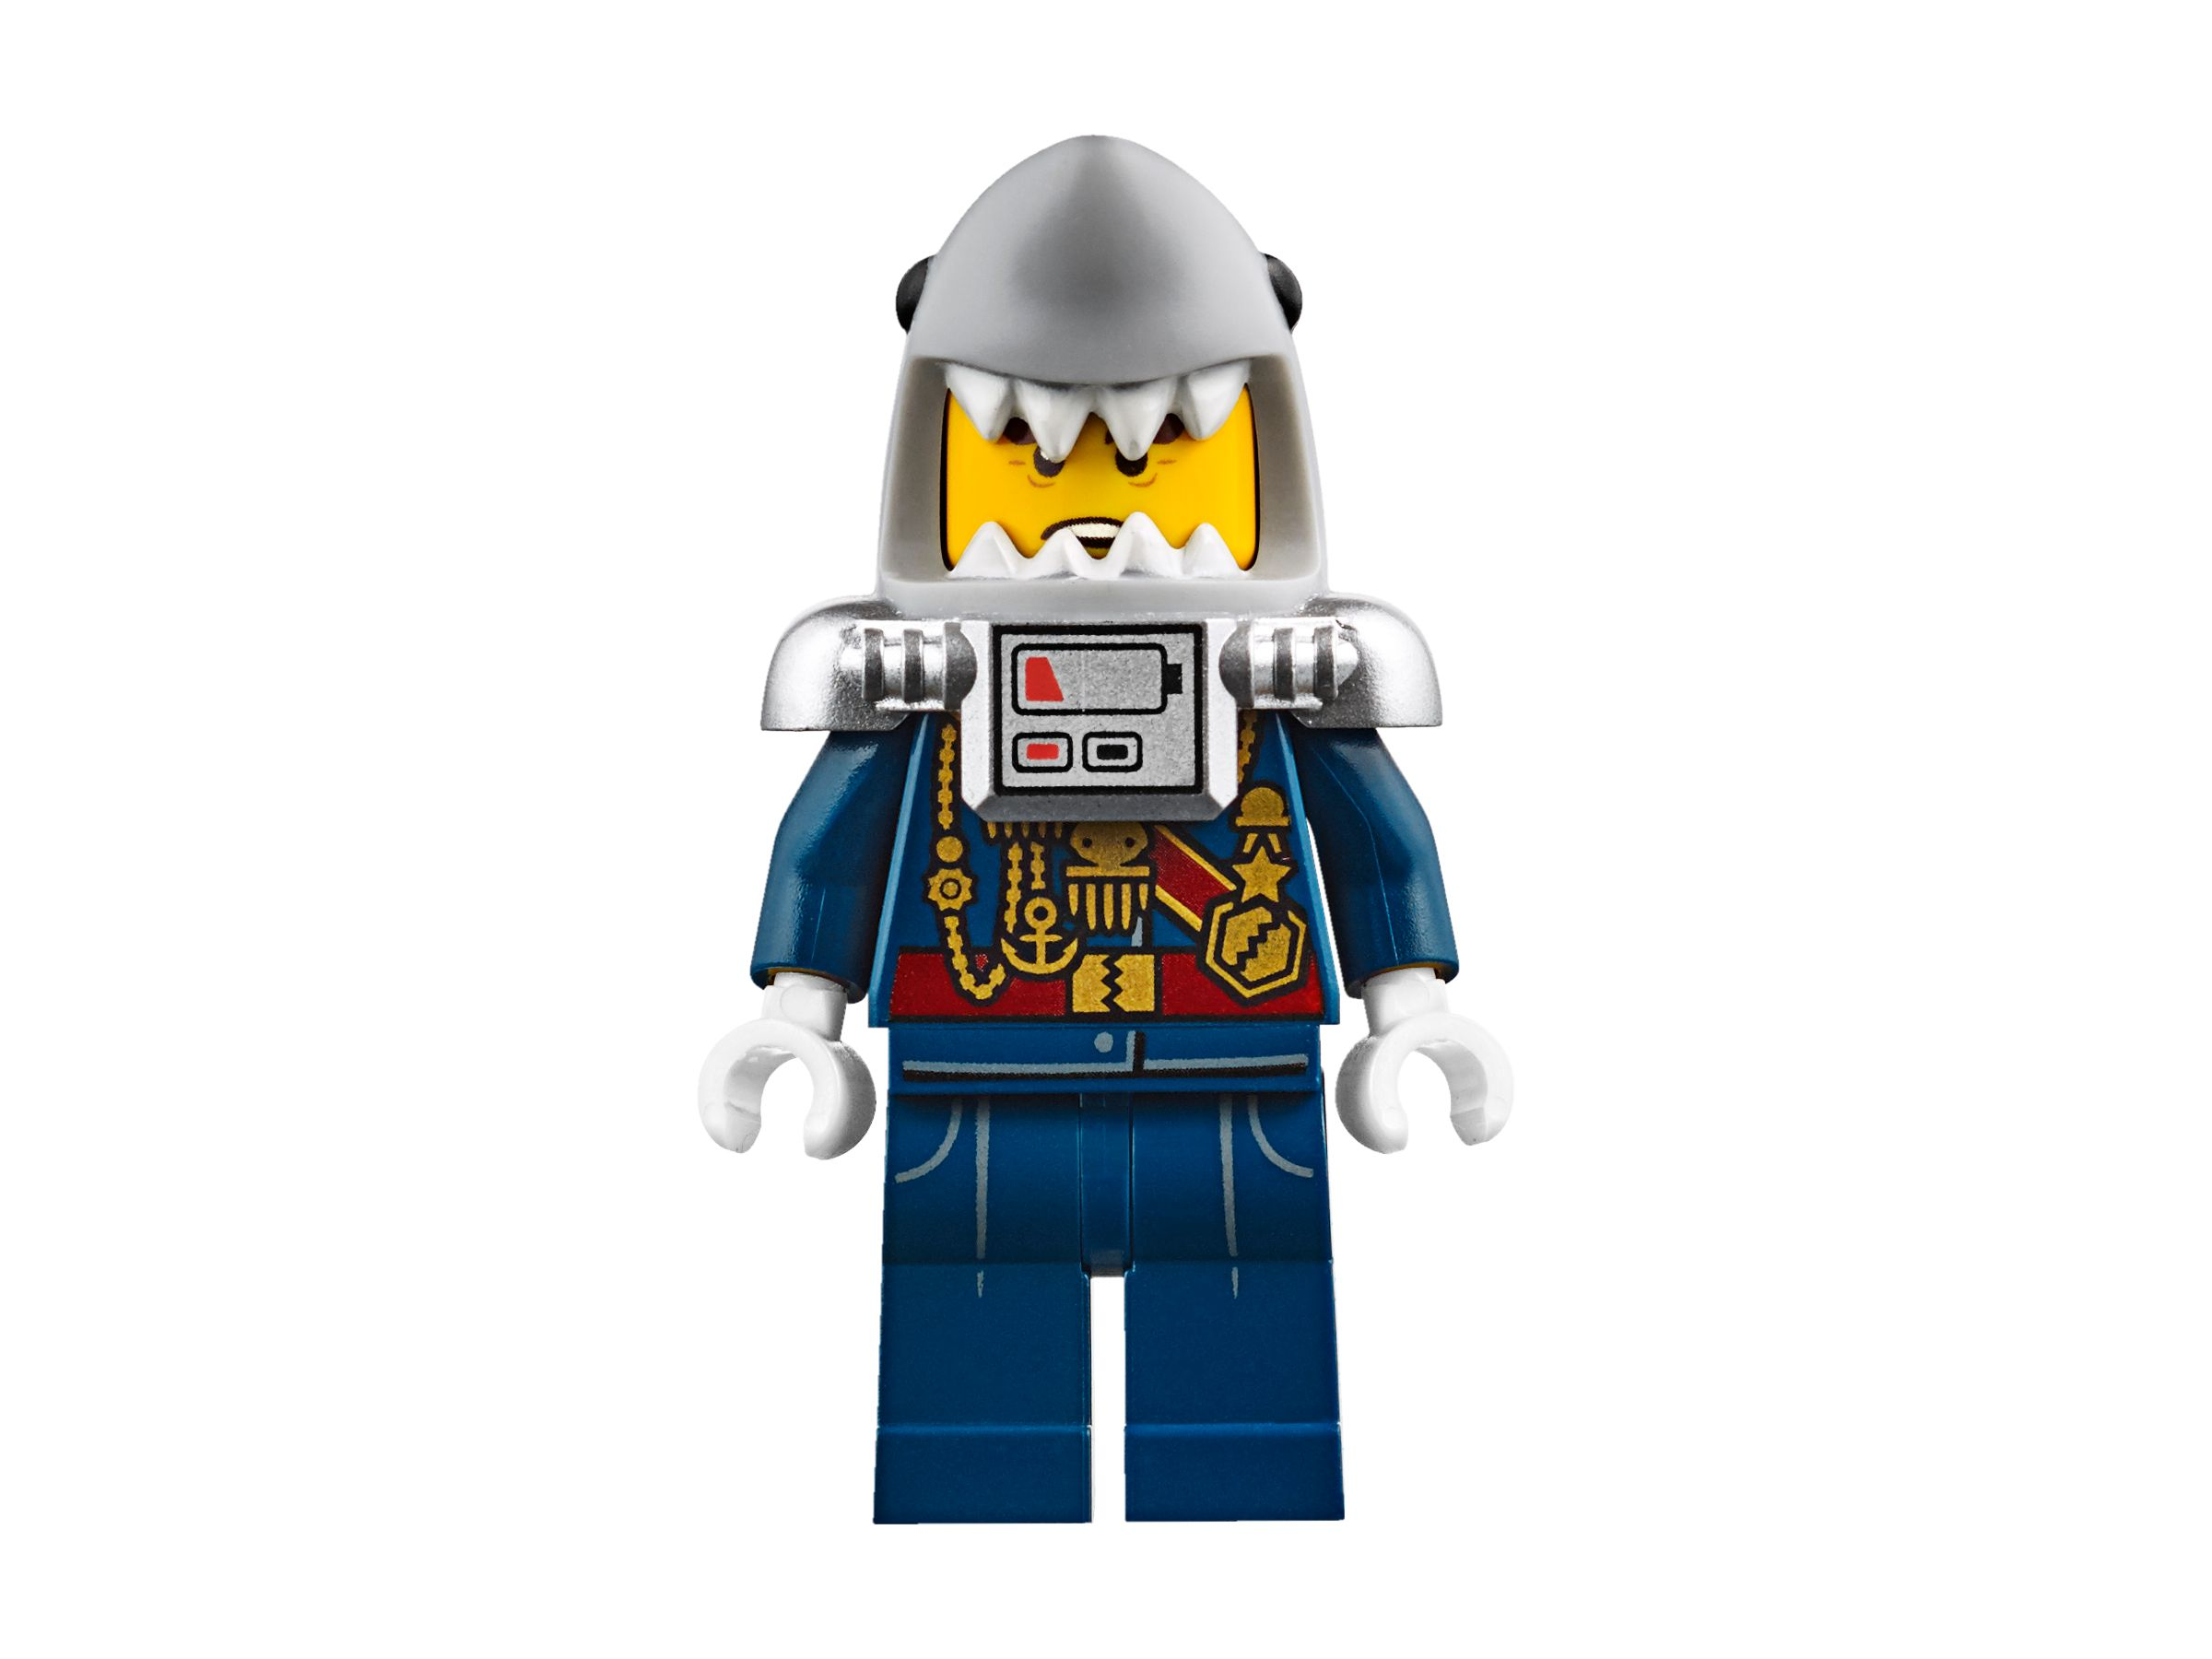 LEGO The LEGO Ninjago Movie 70631 Garmadons Vulkanversteck LEGO_70631_alt11.jpg